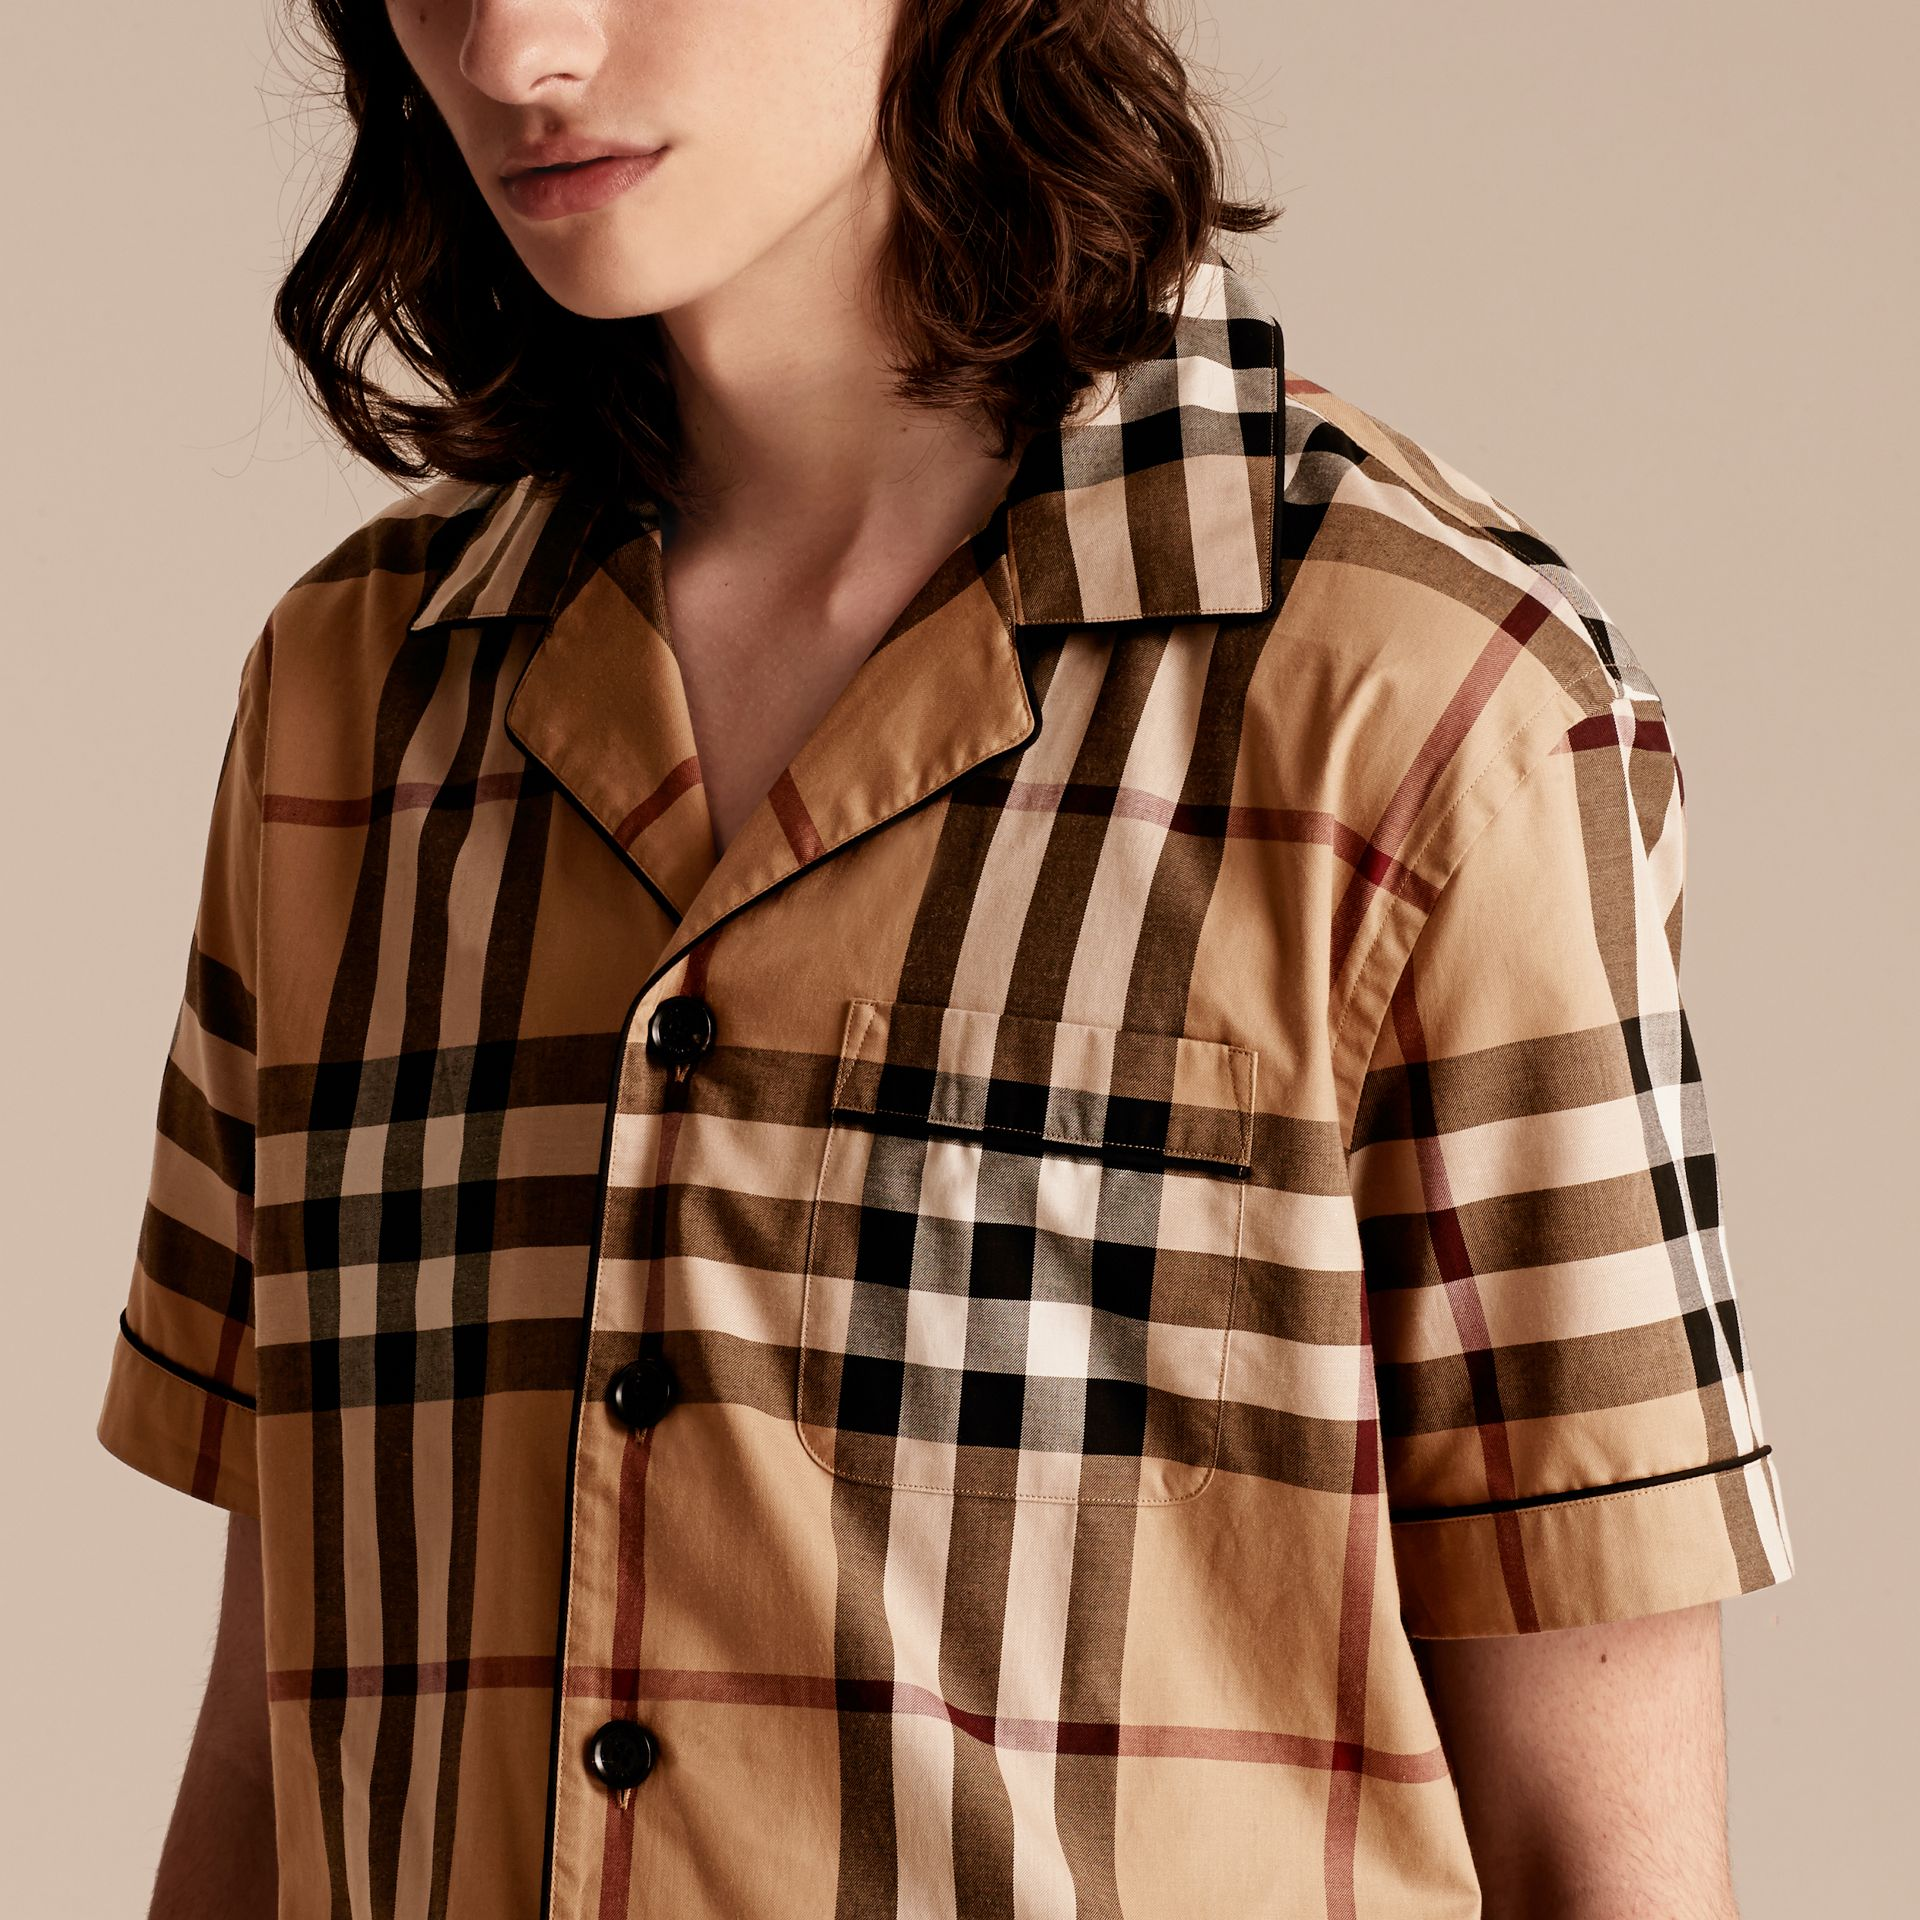 Camel Short-sleeved Check Cotton Pyjama-style Shirt Camel - gallery image 5